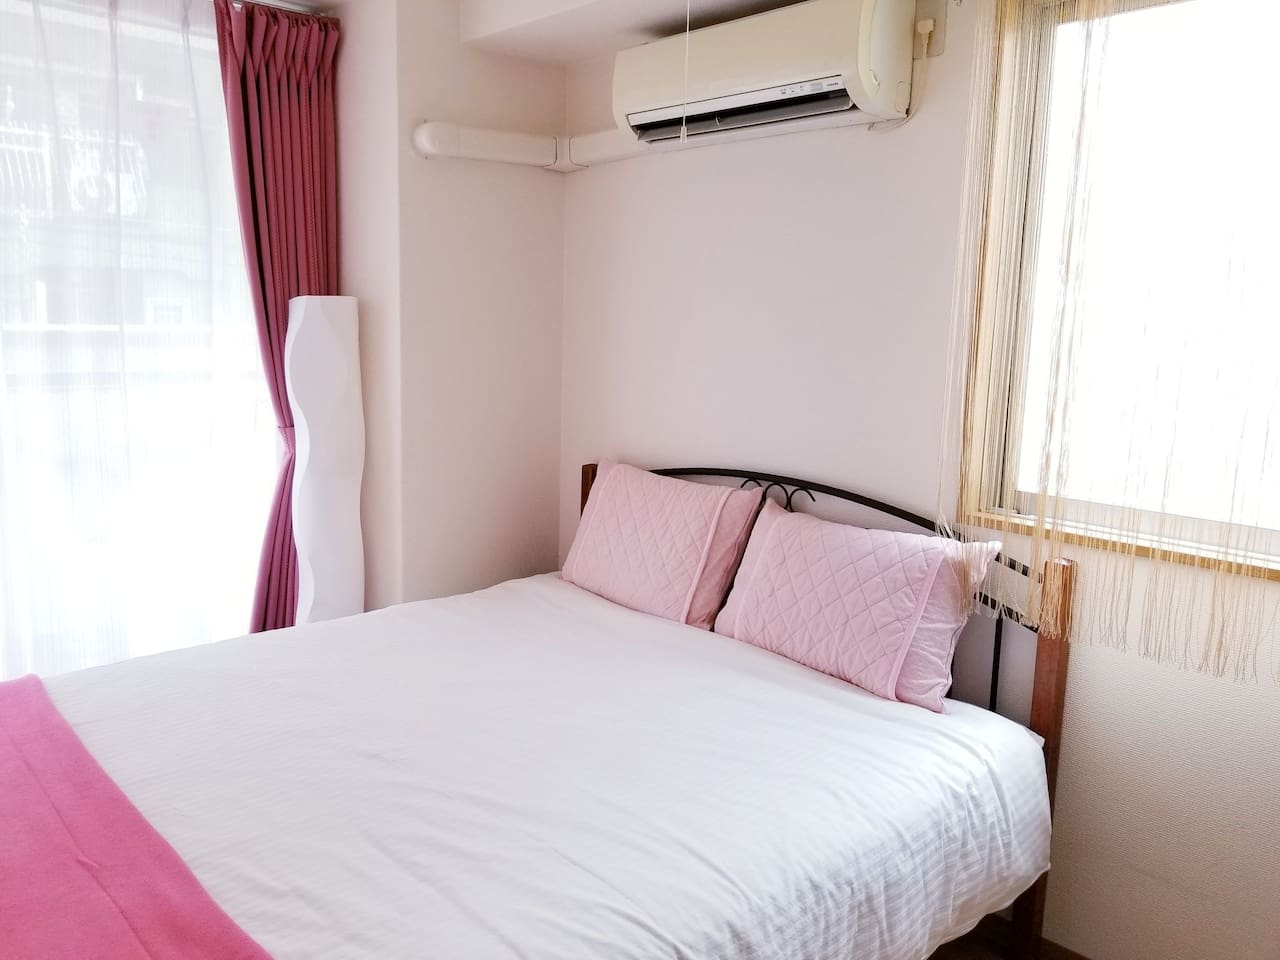 Double bed (140×200) Air conditioner. Warm & Cool